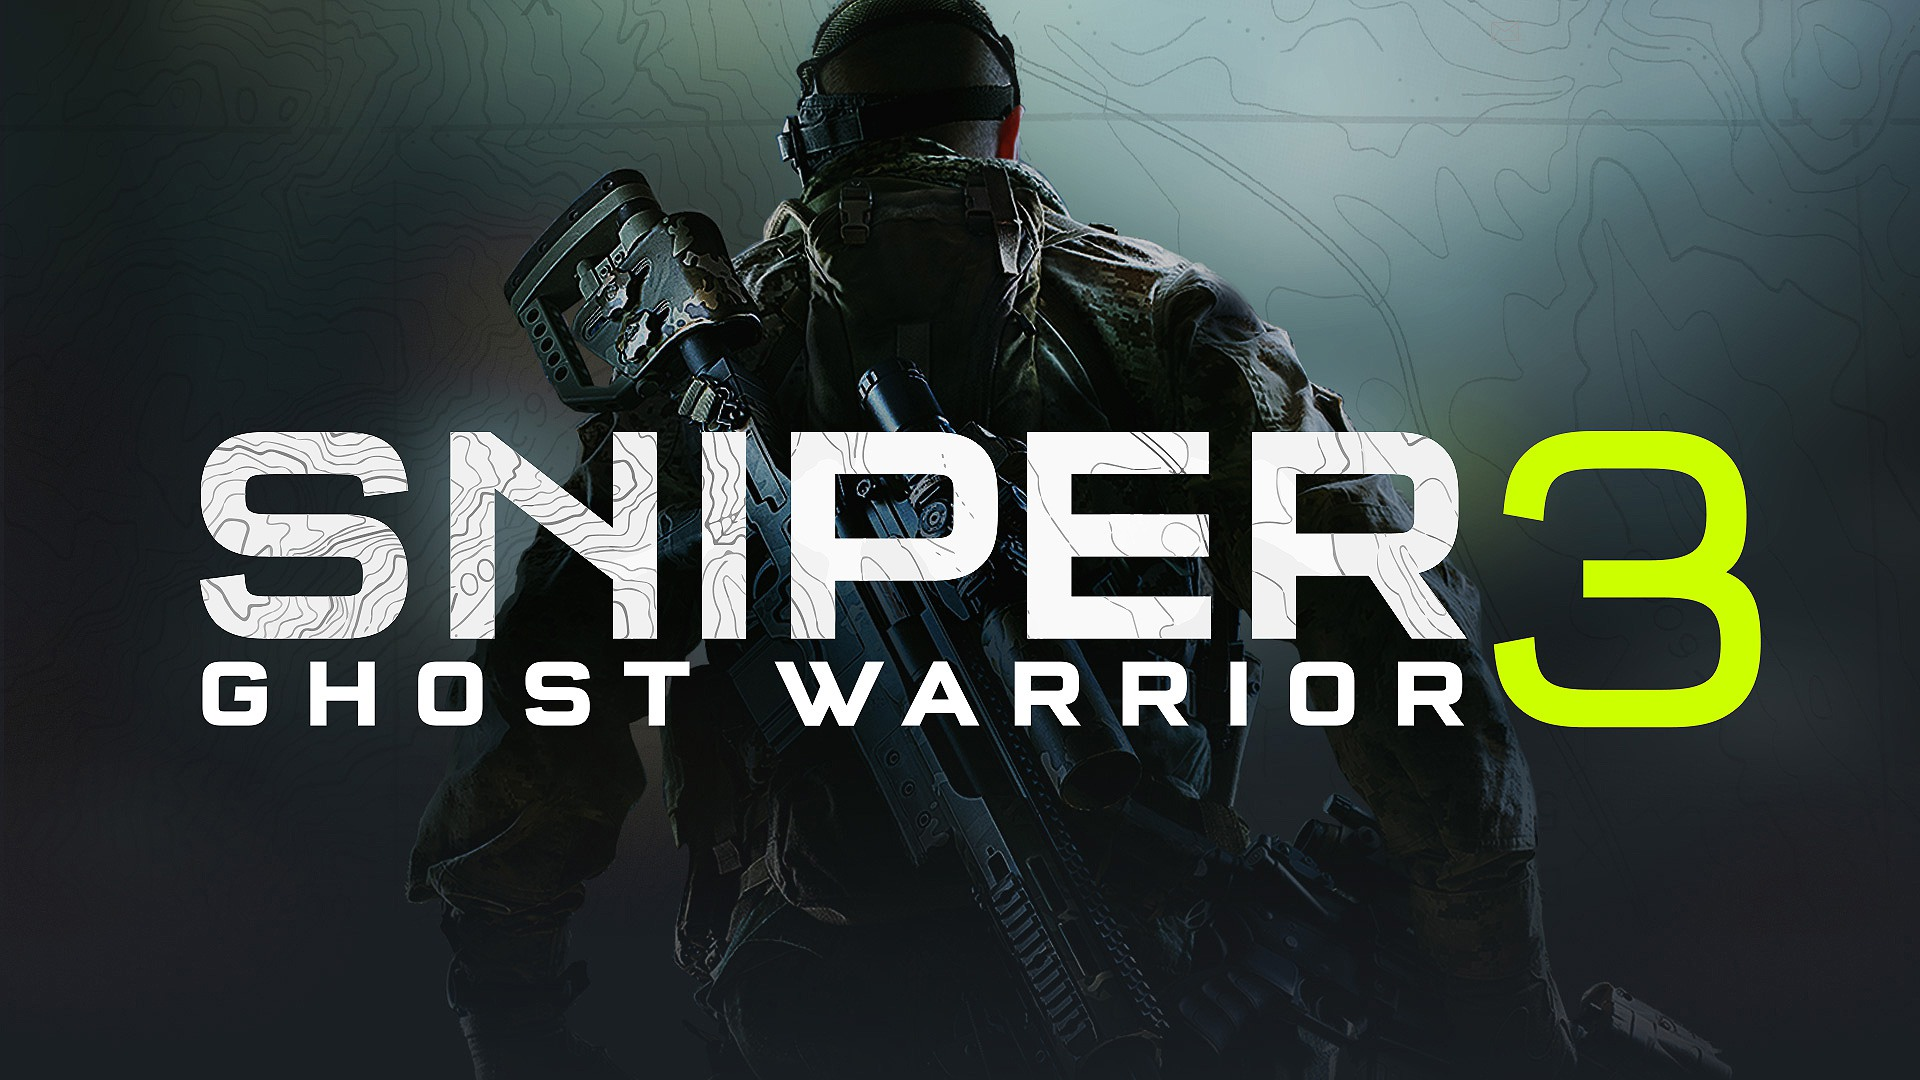 Stiahni si Hry na Windows Sniper Ghost Warrior 3 - Update and Crack v1.2 (2017)(CZ)